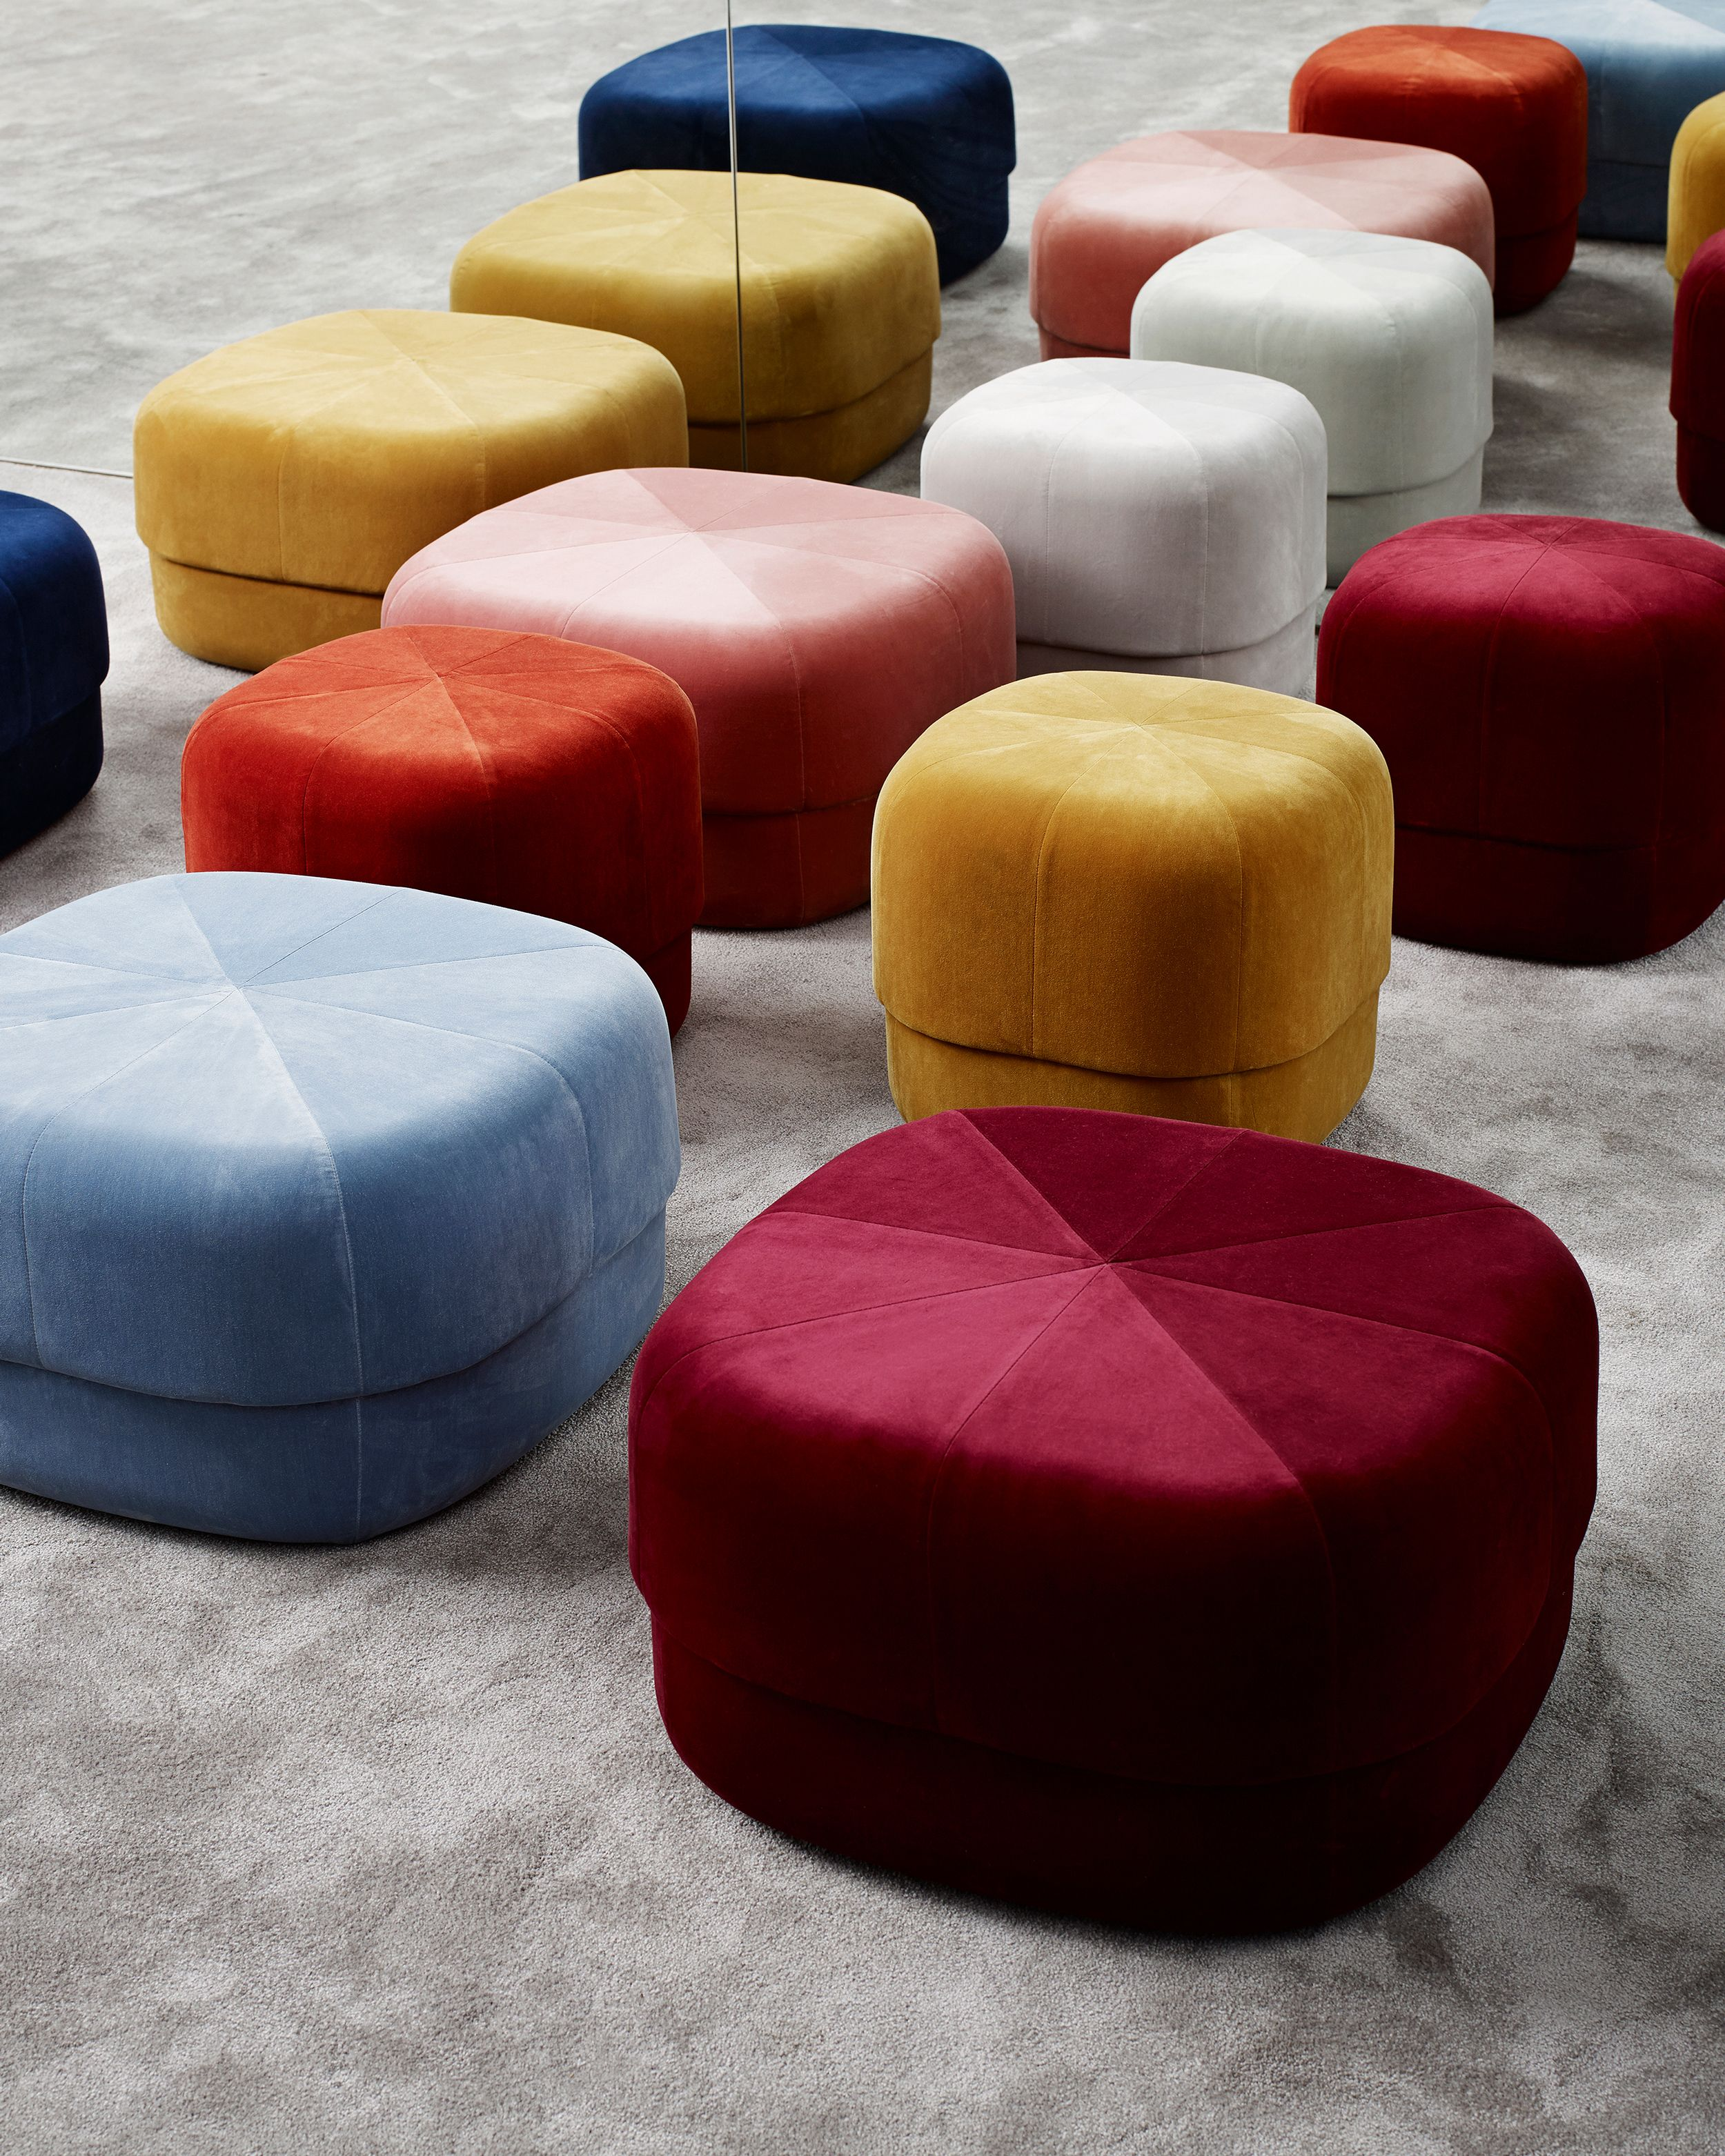 The Circus Pouf Allows Contradictions To Meet In A Design Whose